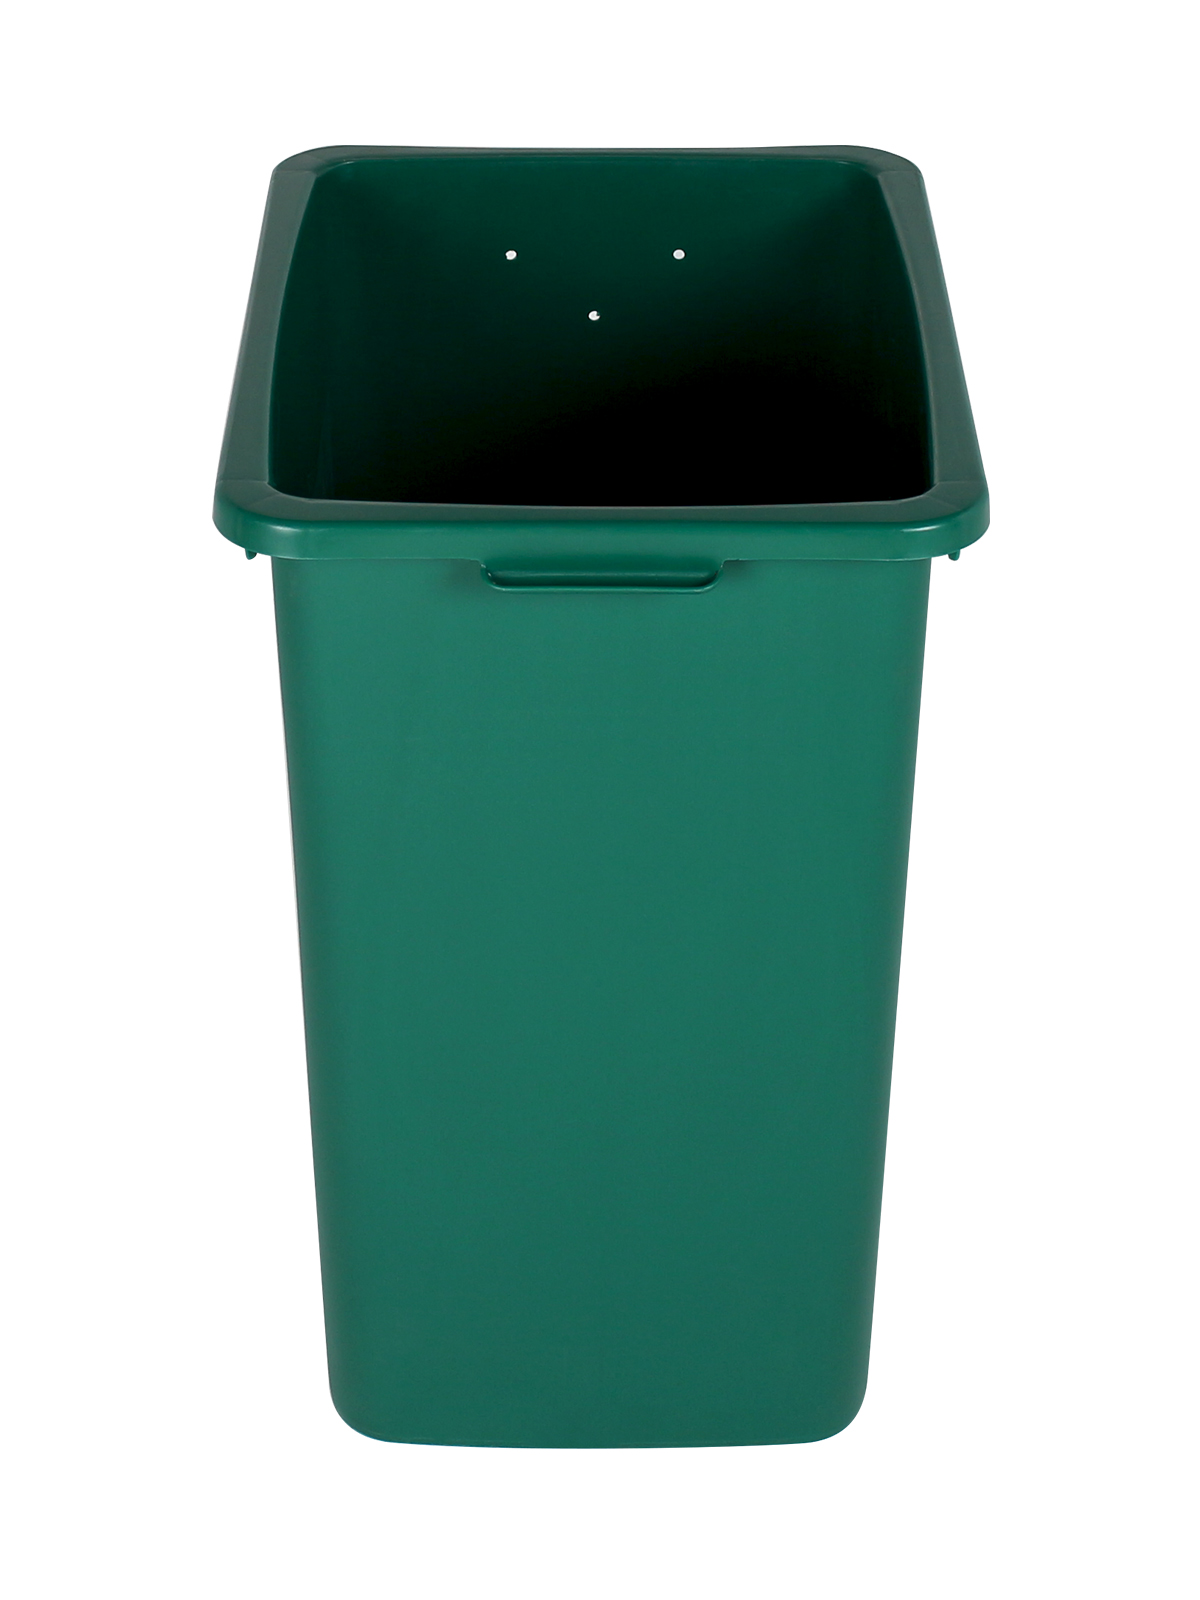 WASTE WATCHER XL - Single - Body - 24 - Mobius Loop - Dark Green